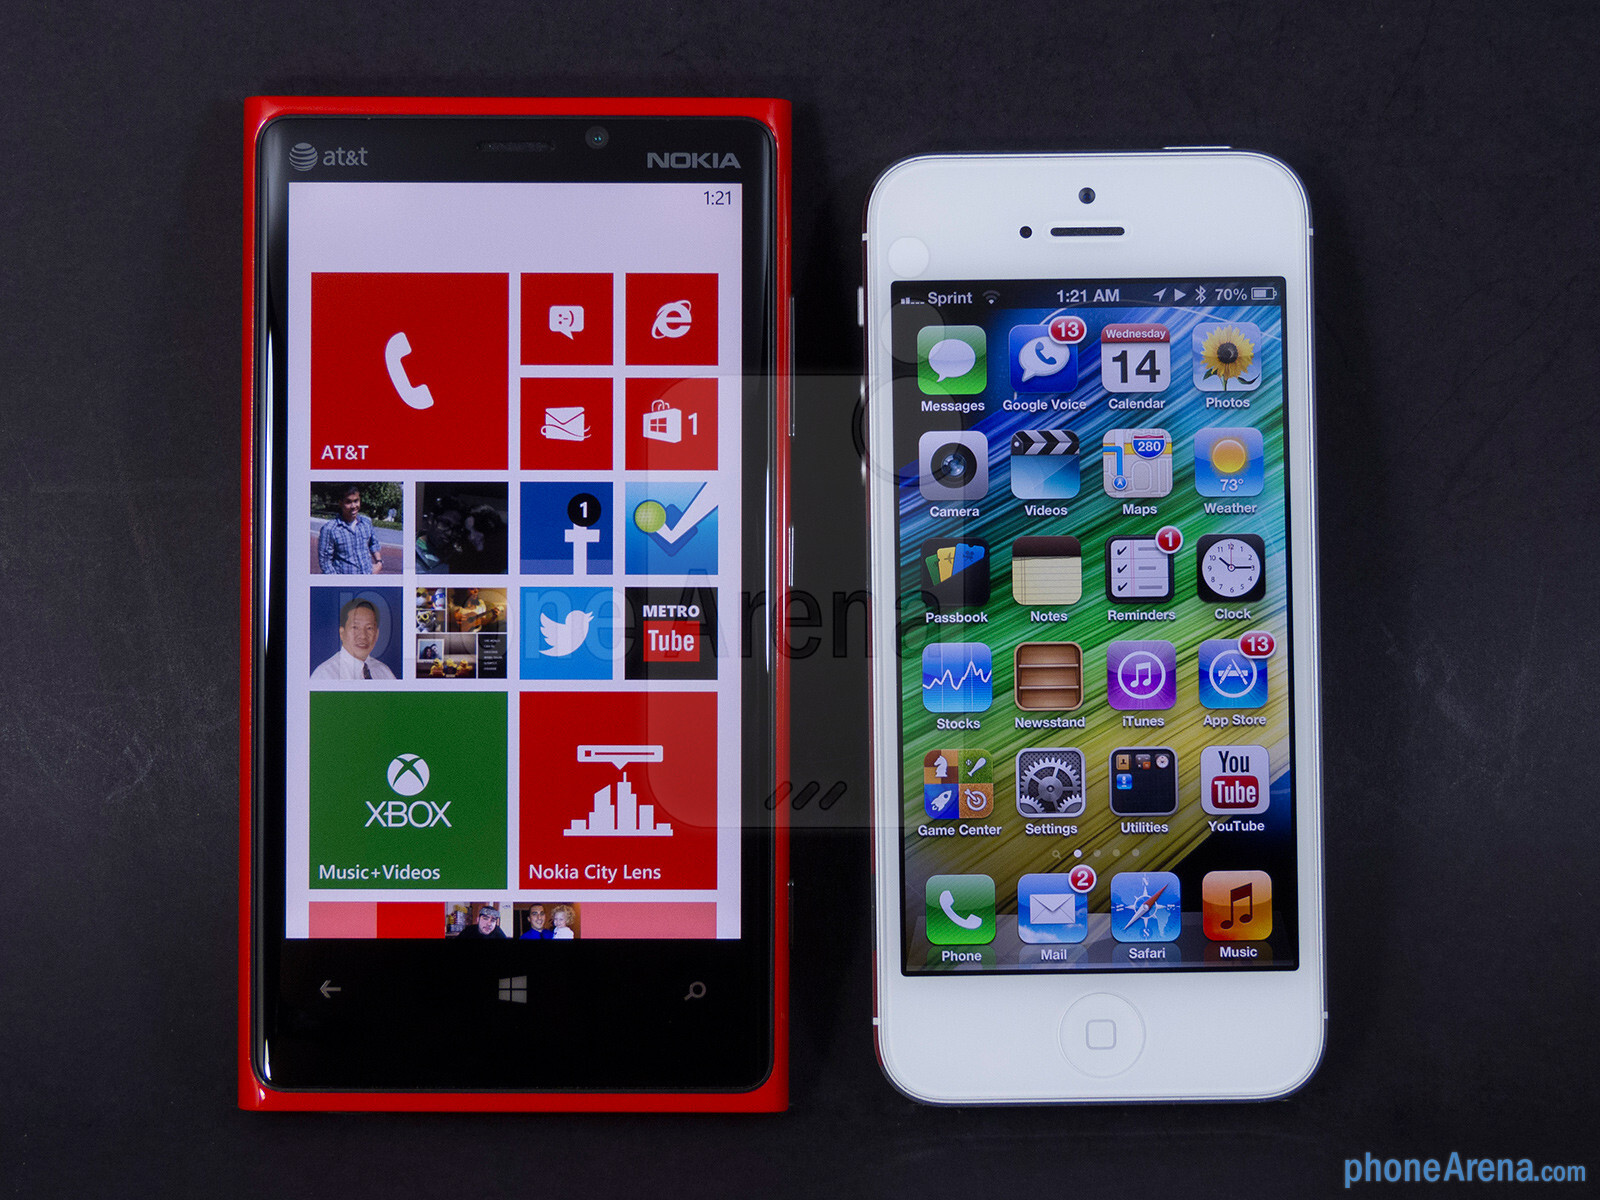 Smartphone Nokia Lumia 720: characteristics, instructions, settings, reviews 85